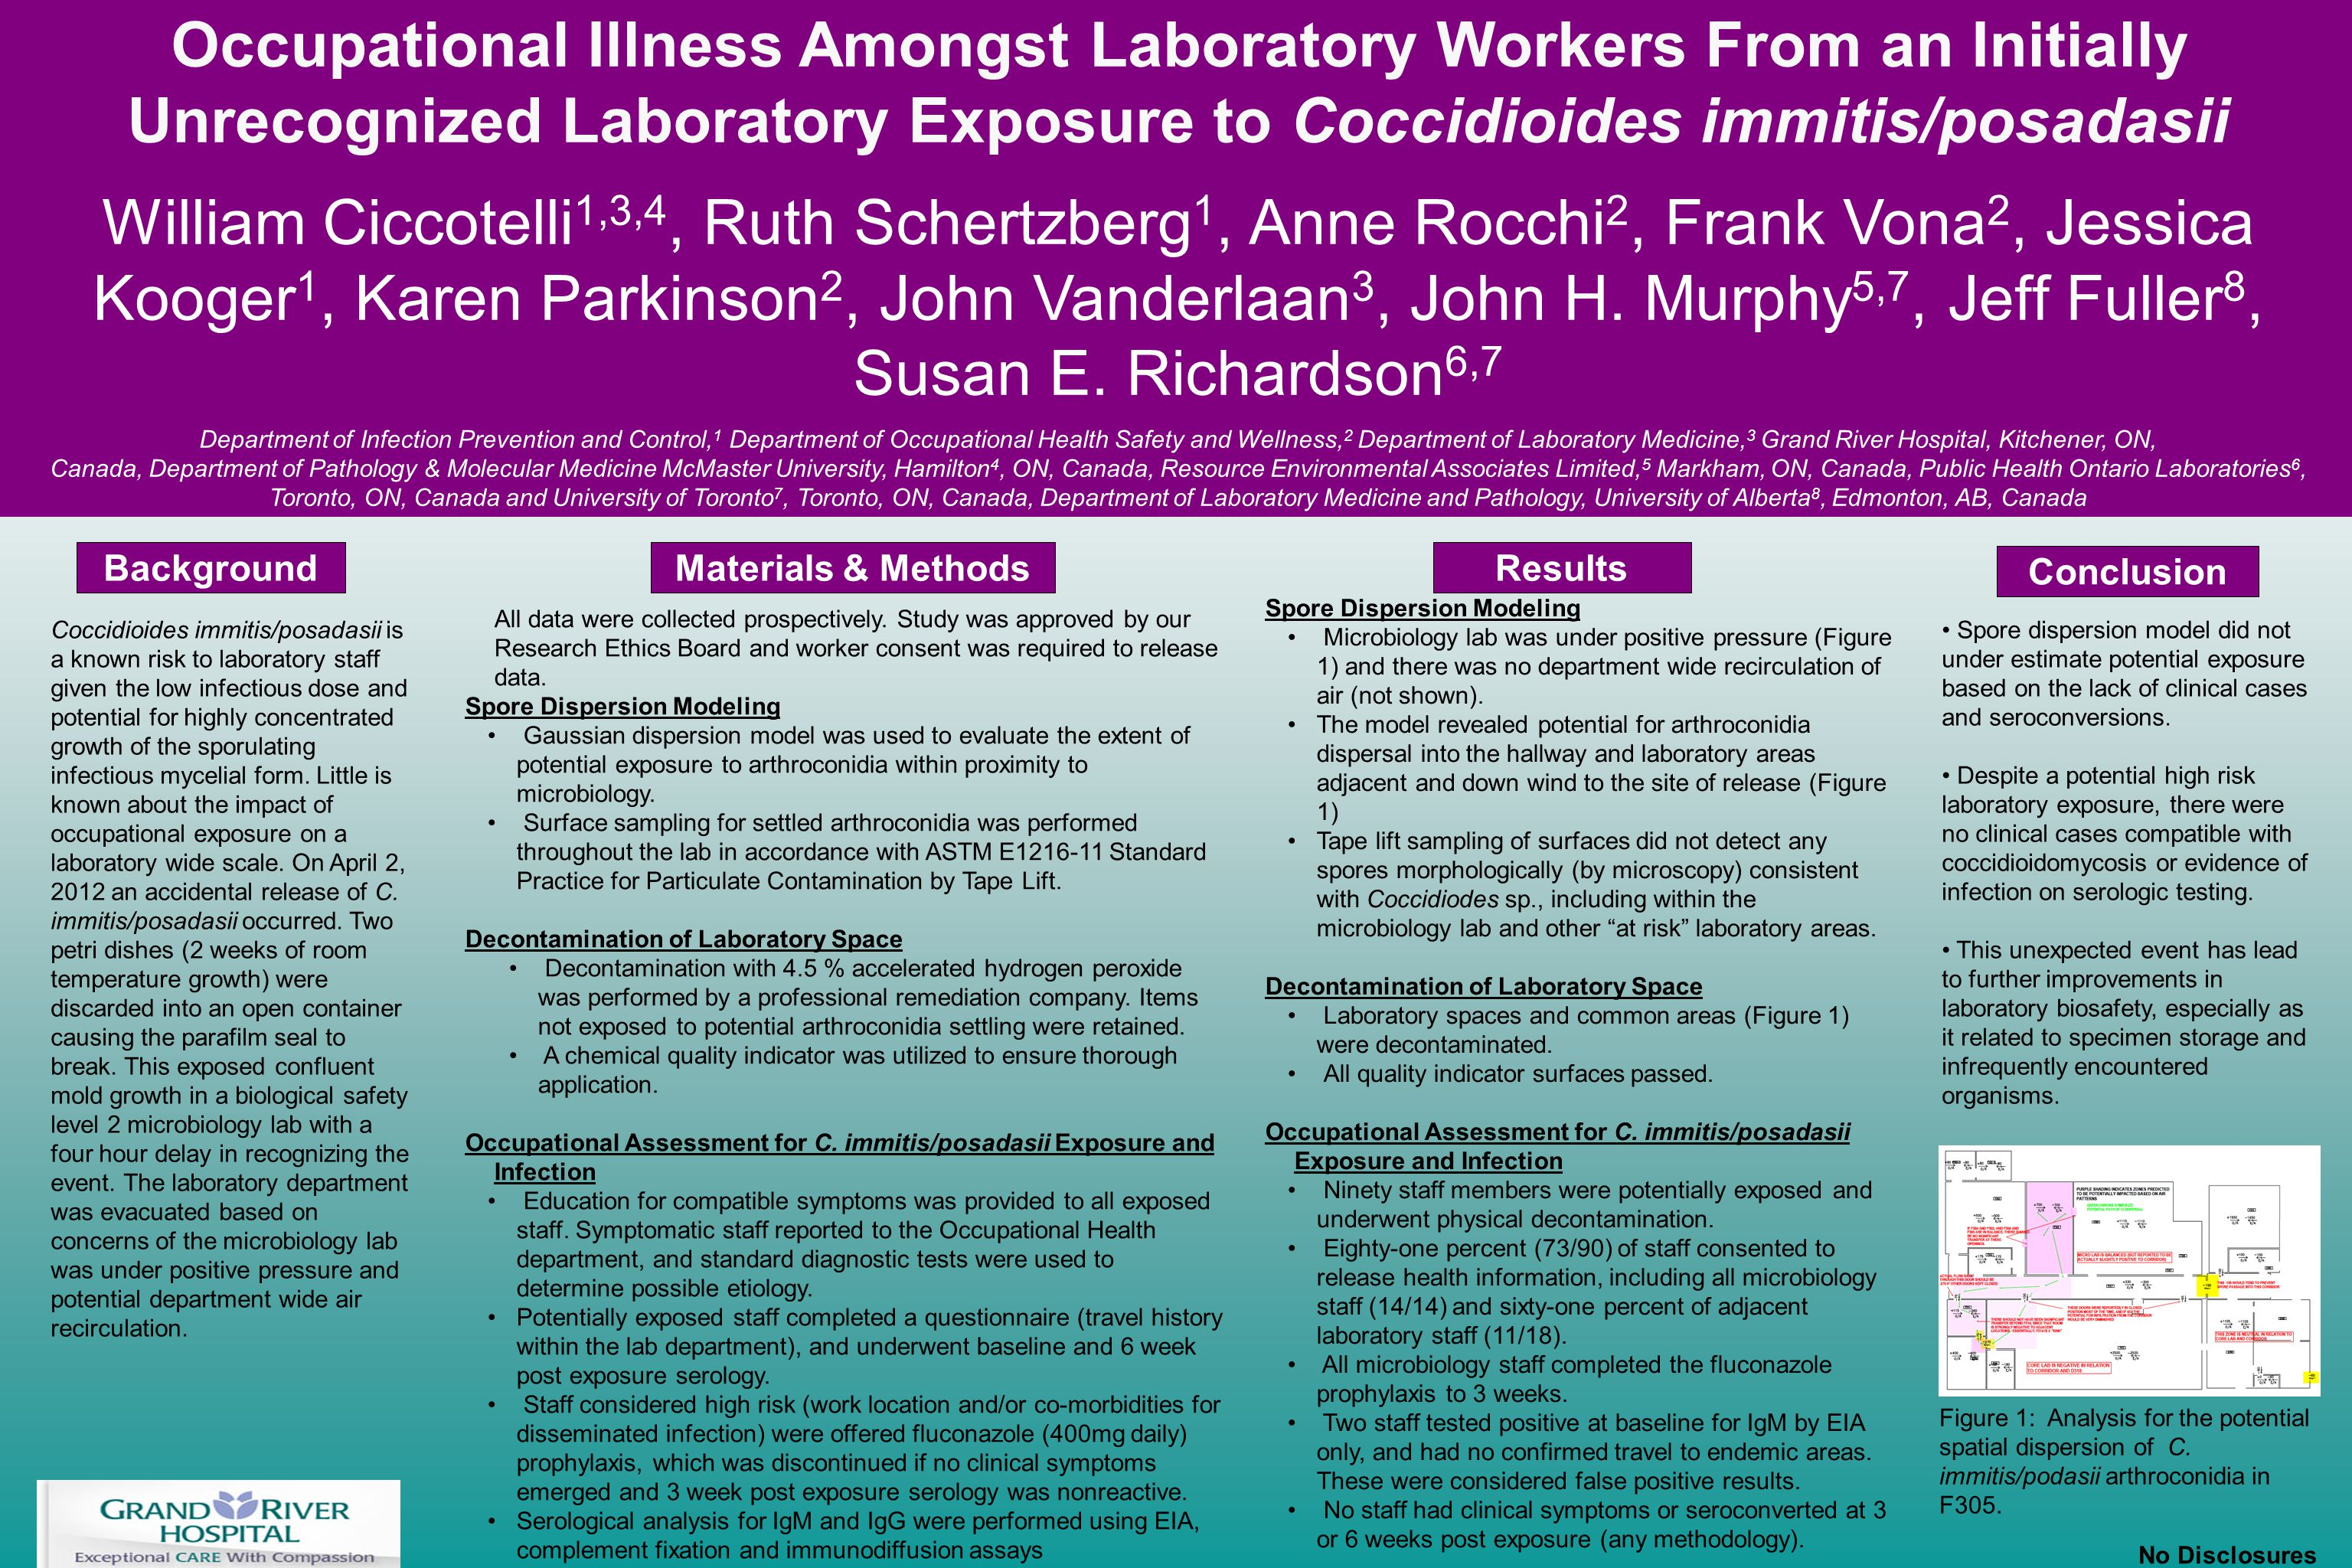 Occupational Illness Amongst Laboratory Workers From an Initially Unrecognized Laboratory Exposure to Coccidioides immitis/posadasii William Ciccotelli 1,3,4, Ruth Schertzberg 1, Anne Rocchi 2, Frank Vona 2, Jessica Kooger 1, Karen Parkinson 2, John Vanderlaan 3, John H.